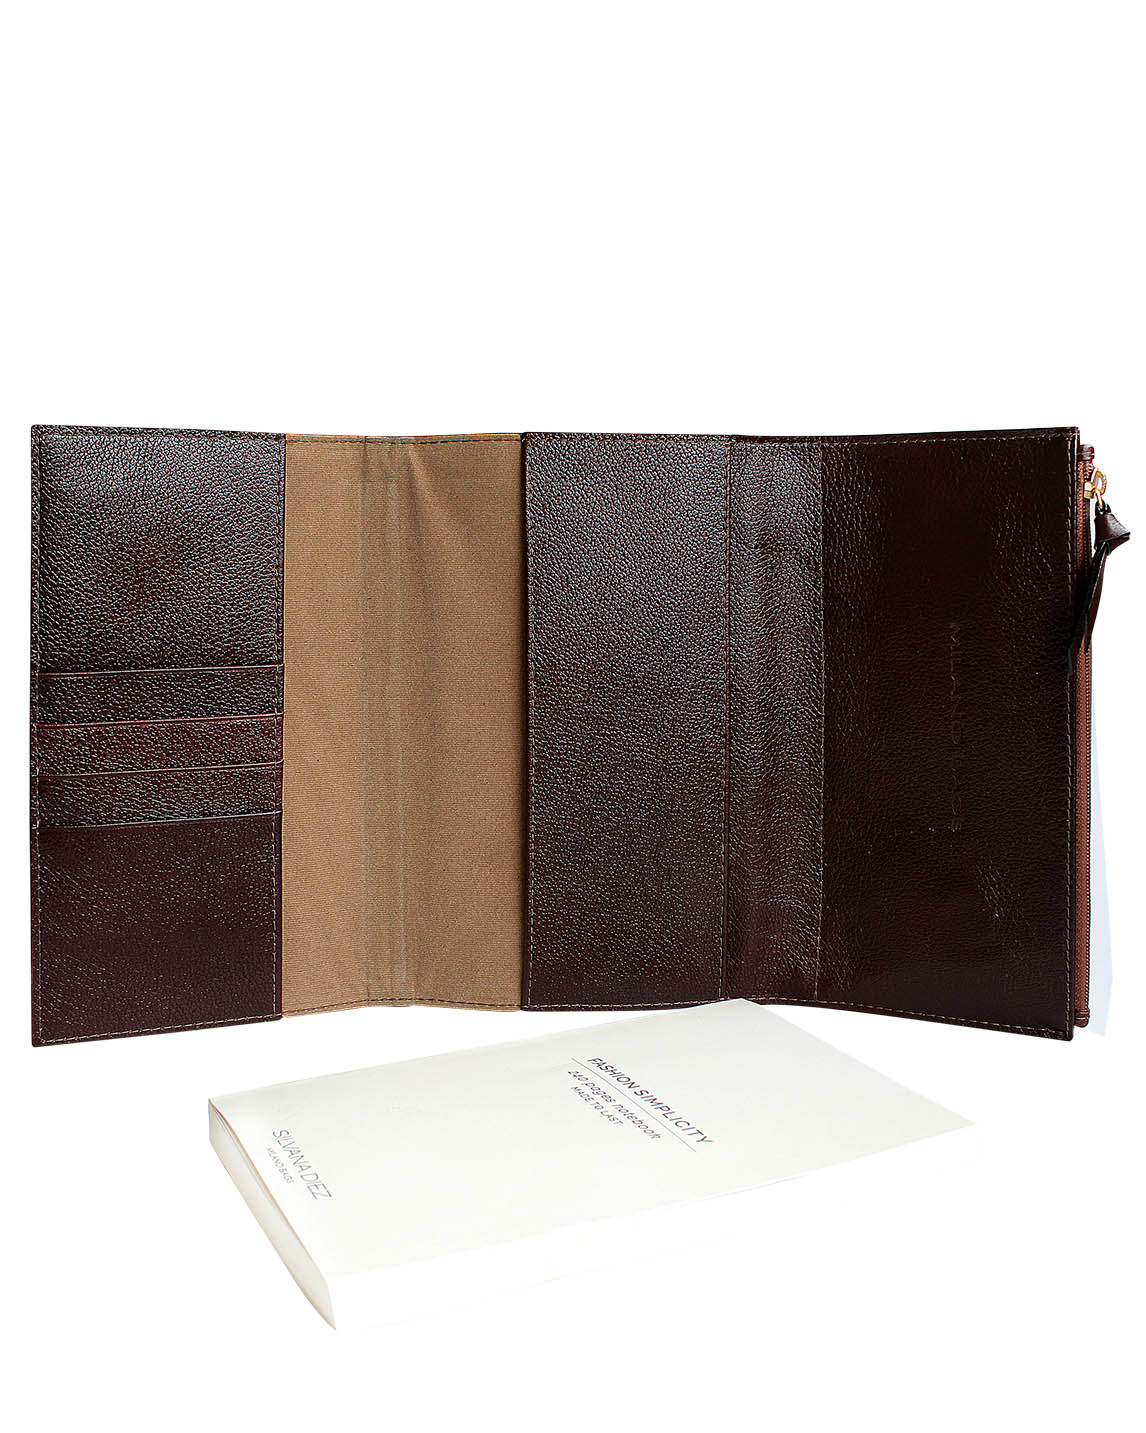 Agenda AG-139 Color Marrón